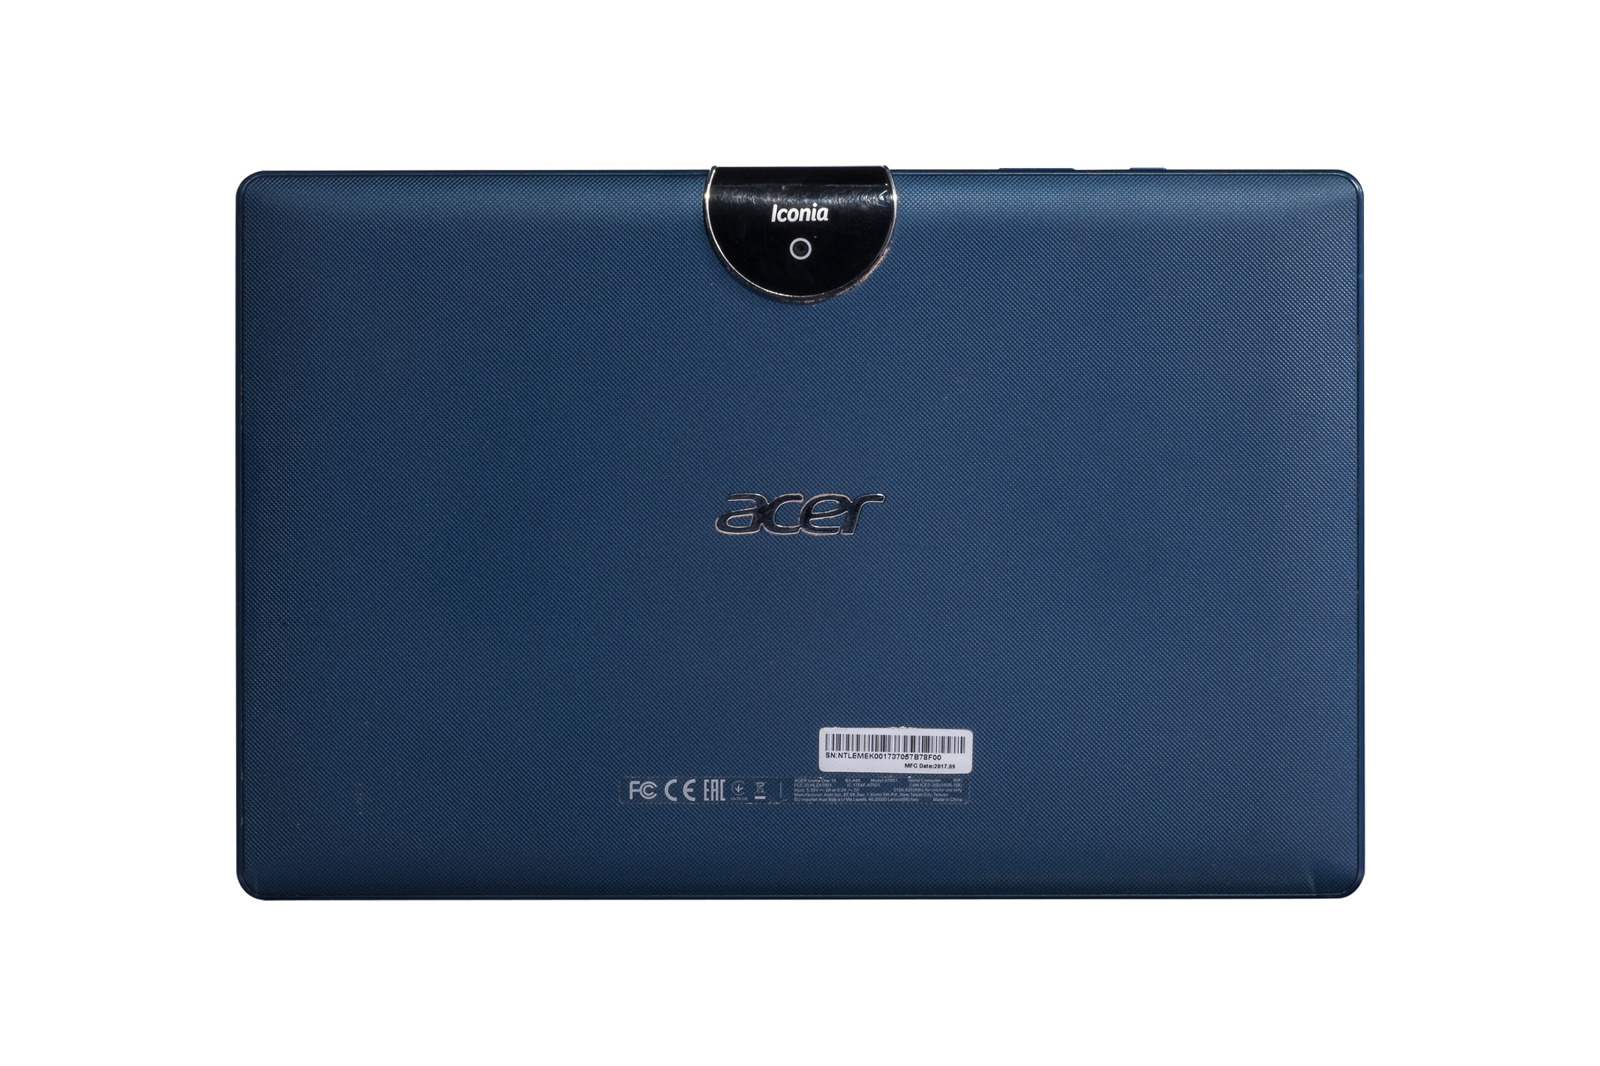 Tablet Acer Iconia One 10 16GB Wi-Fi Navy Blue Grade C